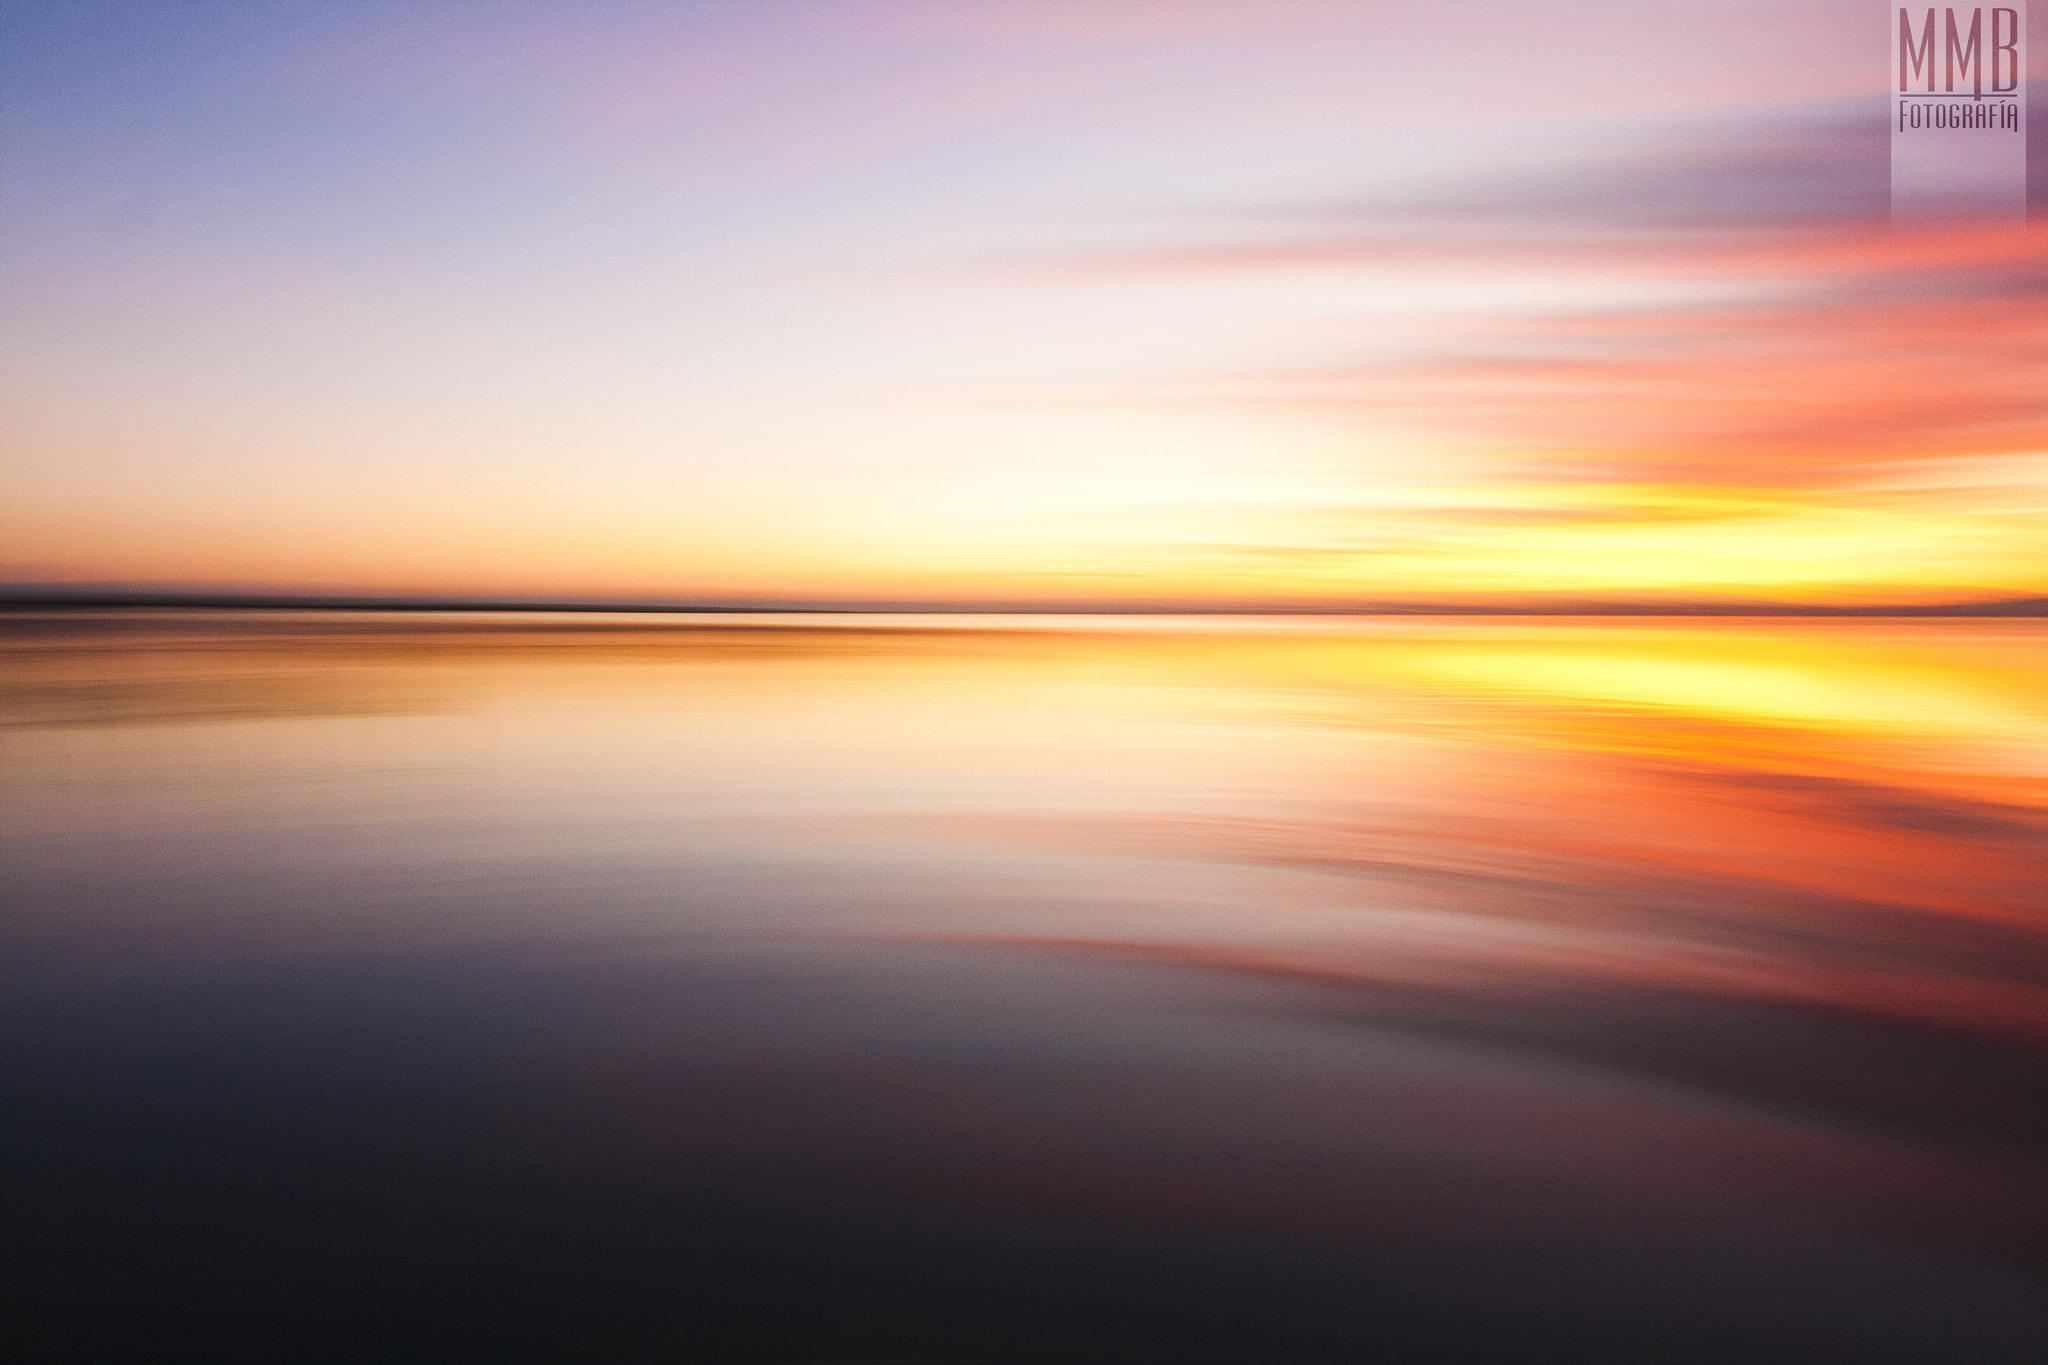 Photograph Abstract sunset by MMB Fotografía Adolfo Gris on 500px